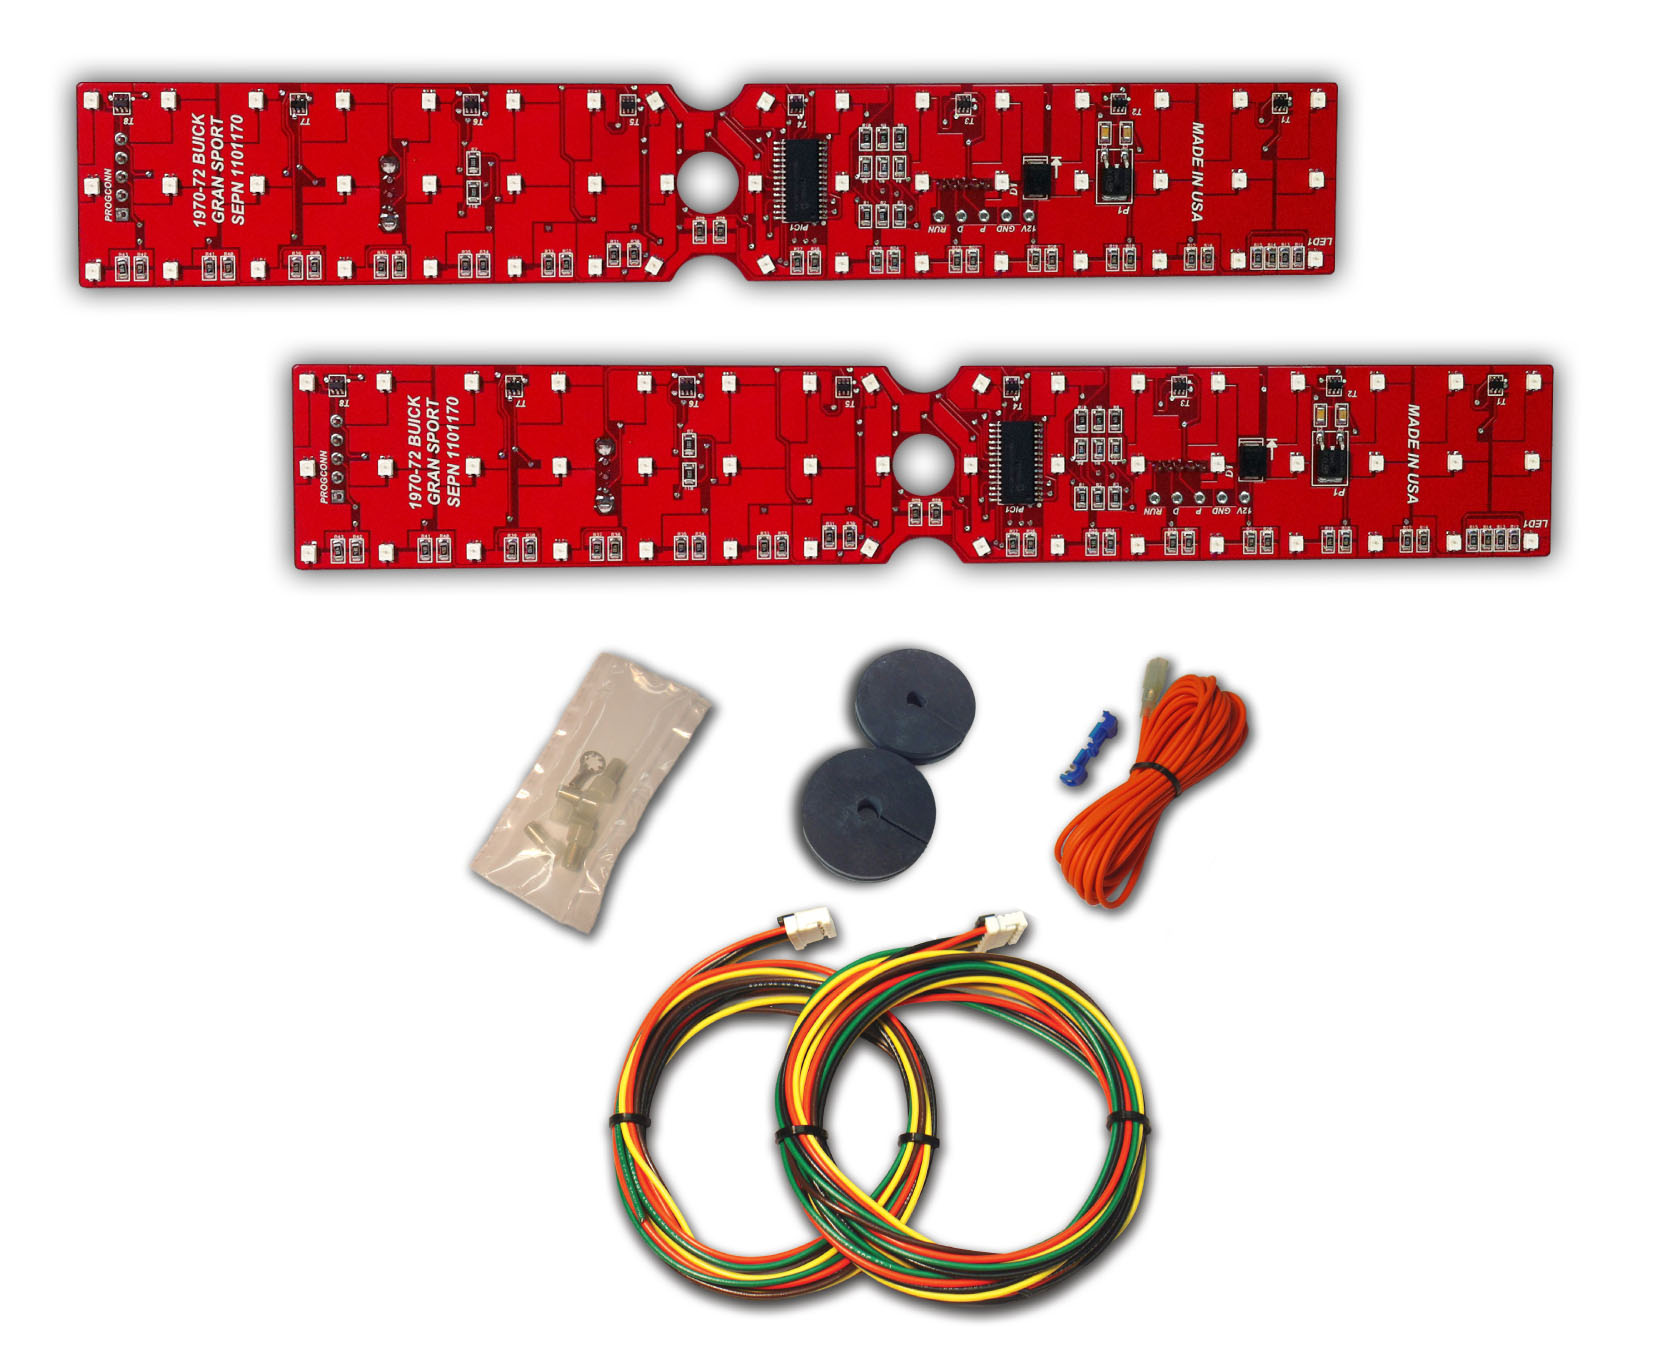 hight resolution of 1970 nova rear lights wiring harness trusted wiring diagram 1956 buick wiring diagram 1968 buick gran